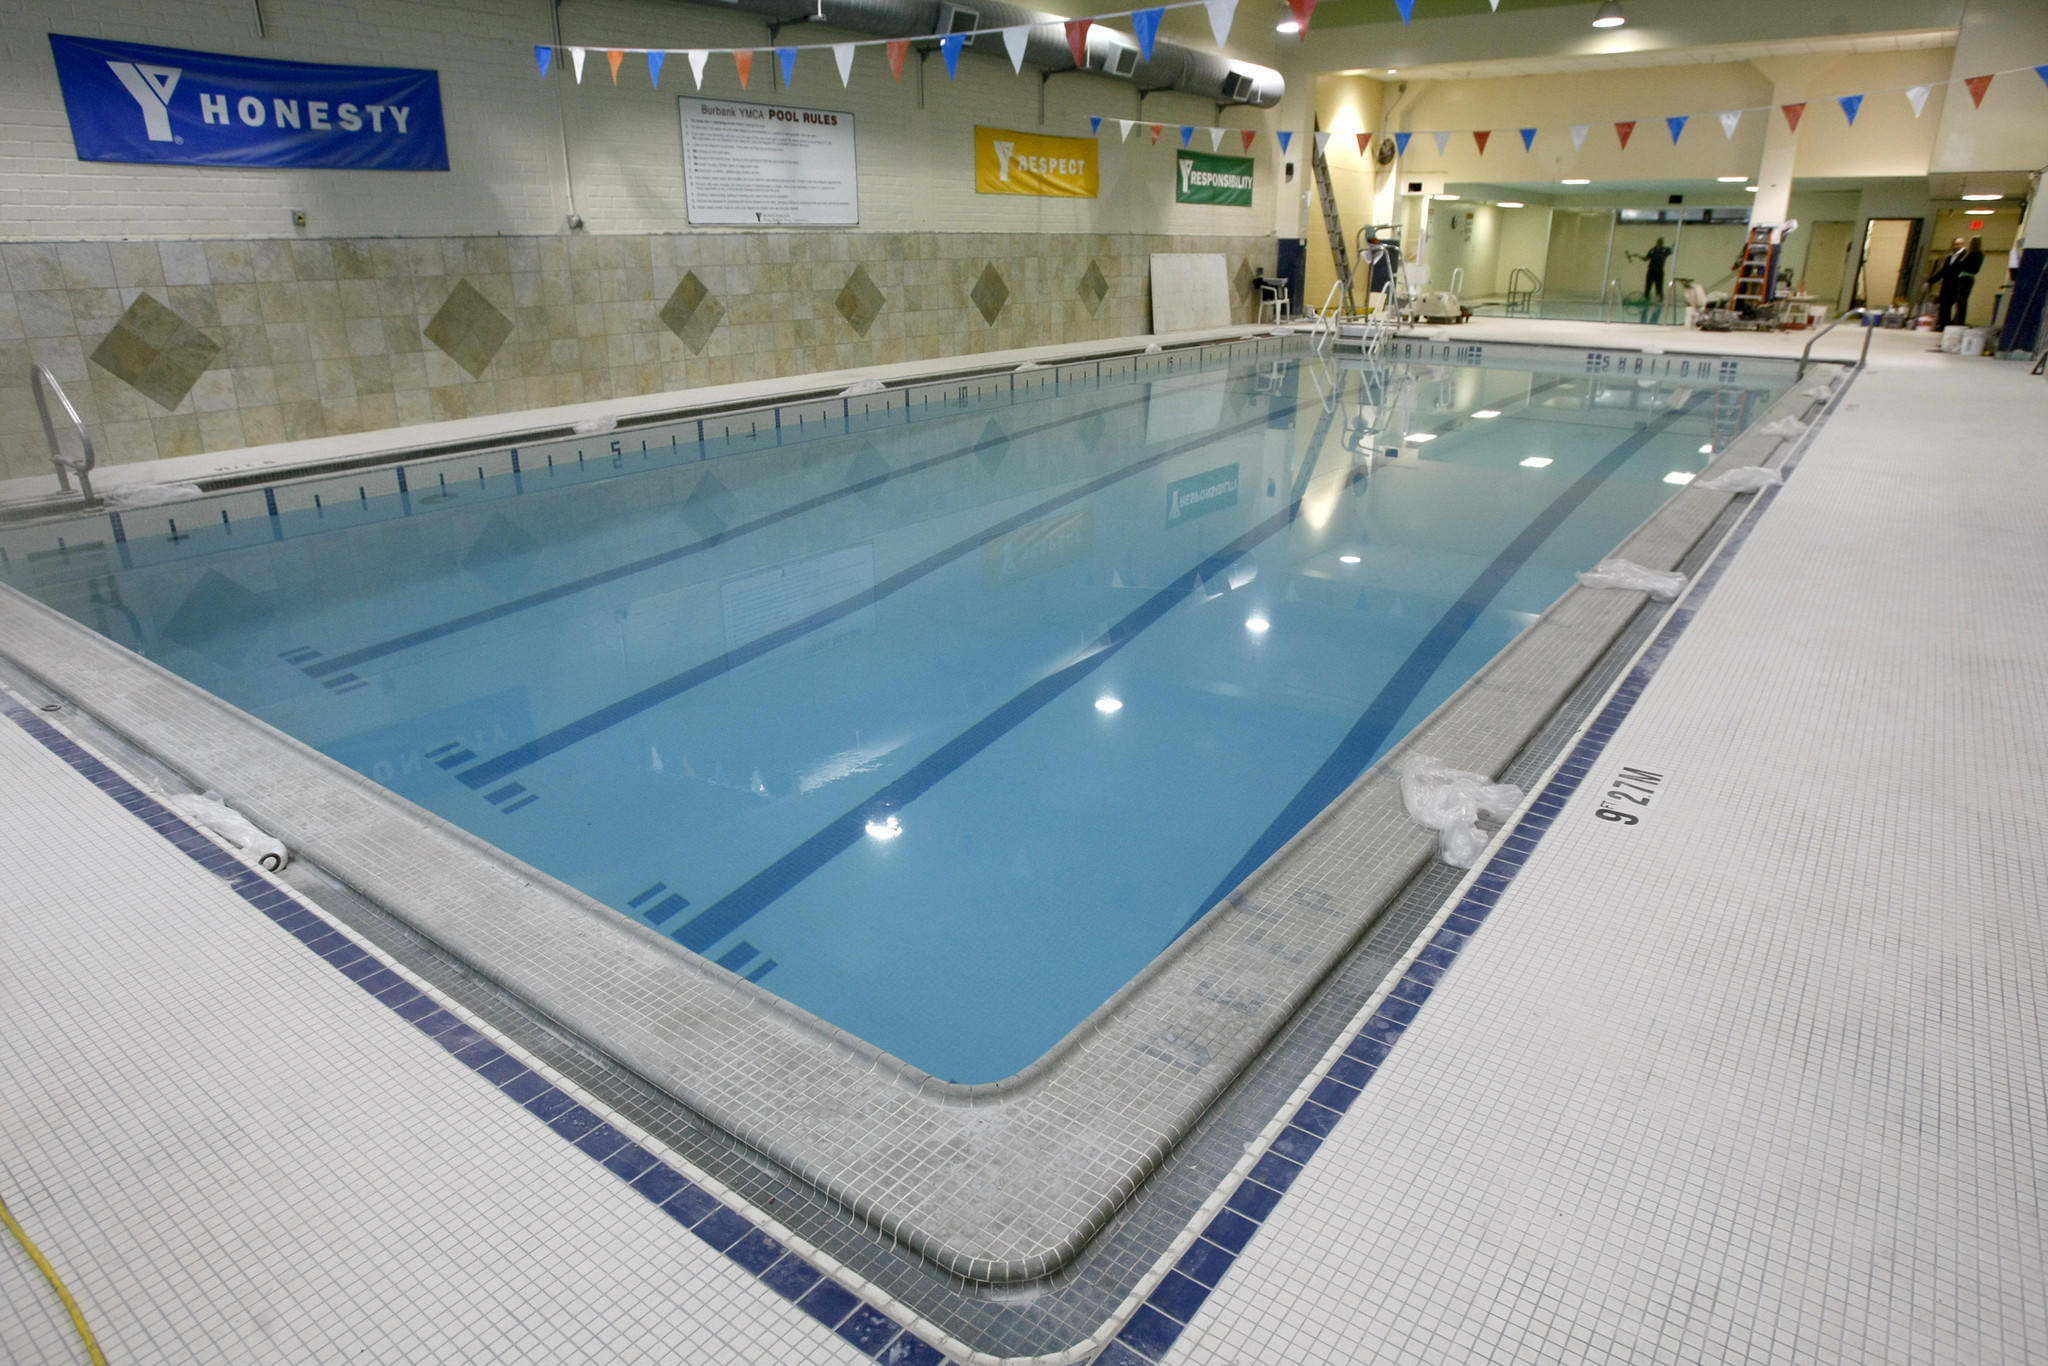 The Burbank Community YMCA recently spent about $1 million for renovations of the pool, and the gym at the Magnolia Blvd. location in Burbank, pictured in Friday, January 10, 2014.